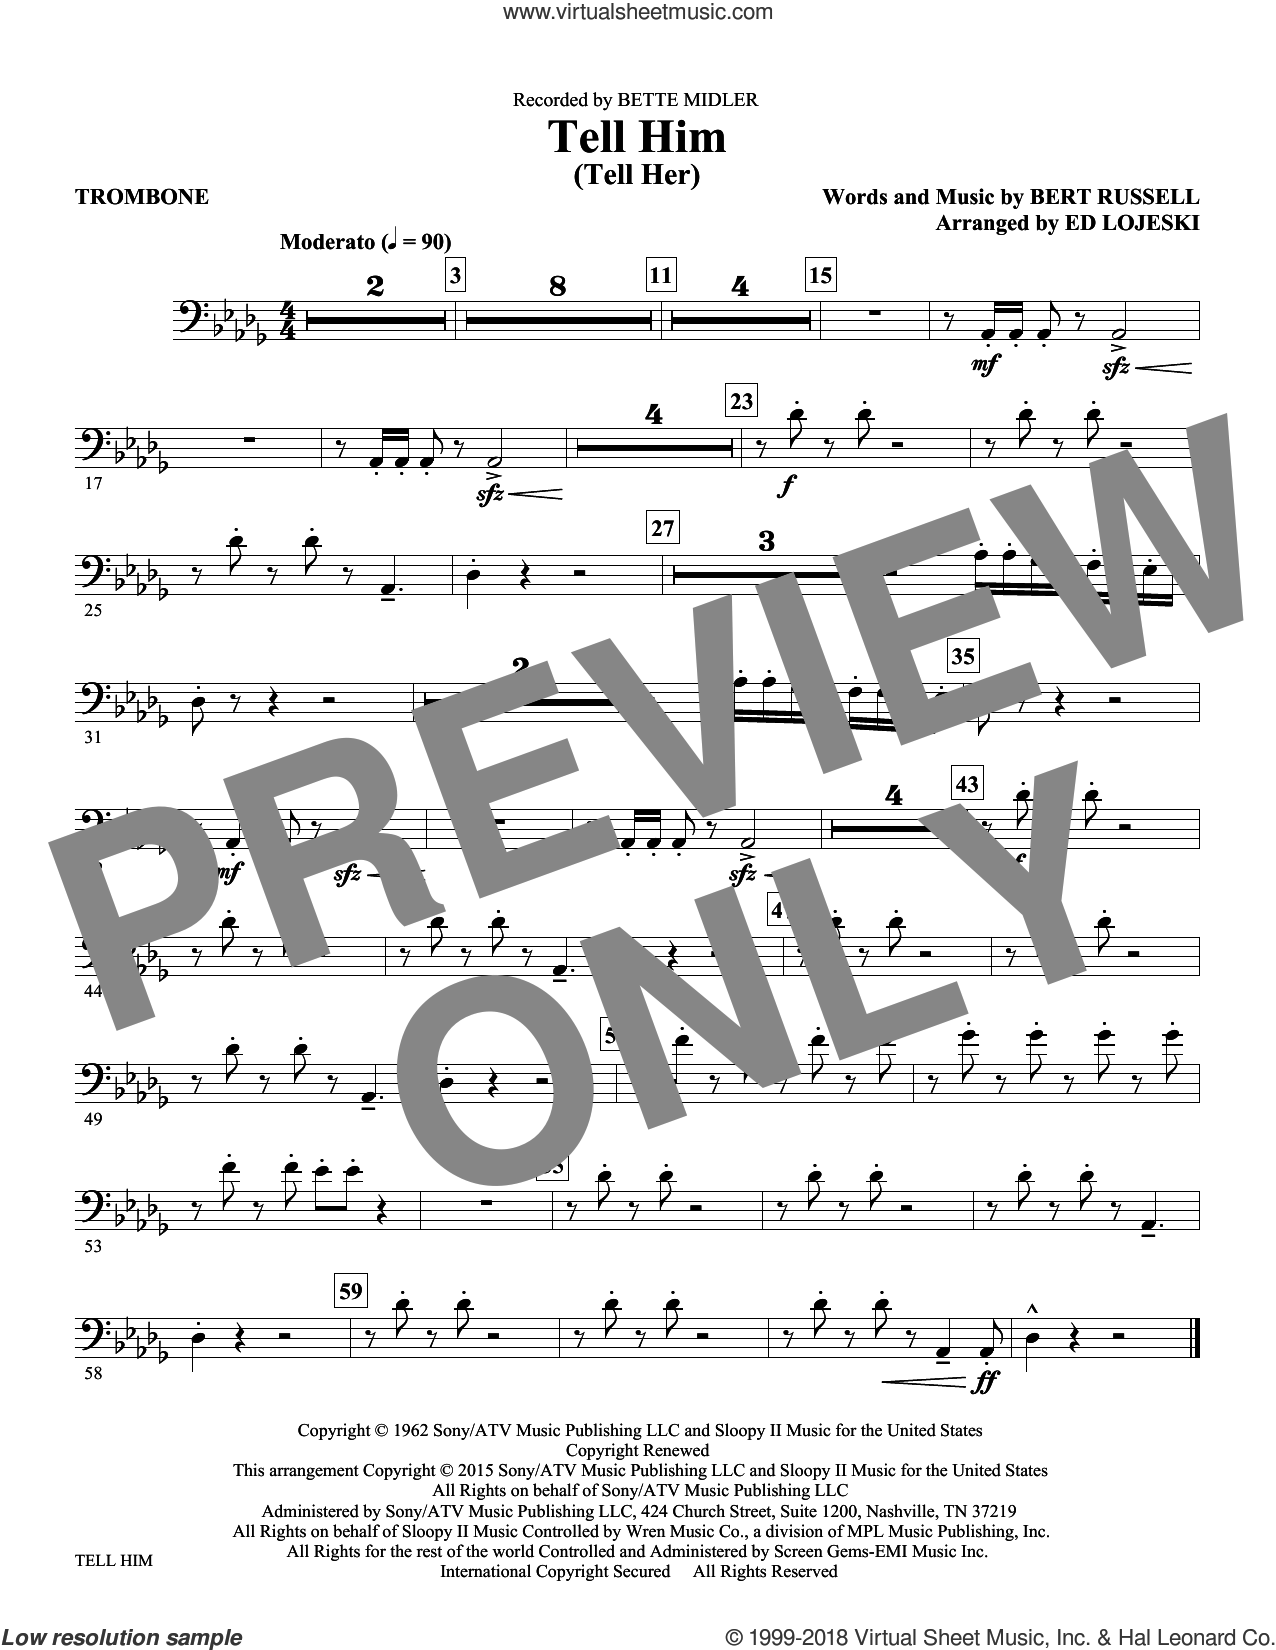 Tell Him (Tell Her) sheet music for orchestra/band (trombone) by Bert Russell and Ed Lojeski. Score Image Preview.